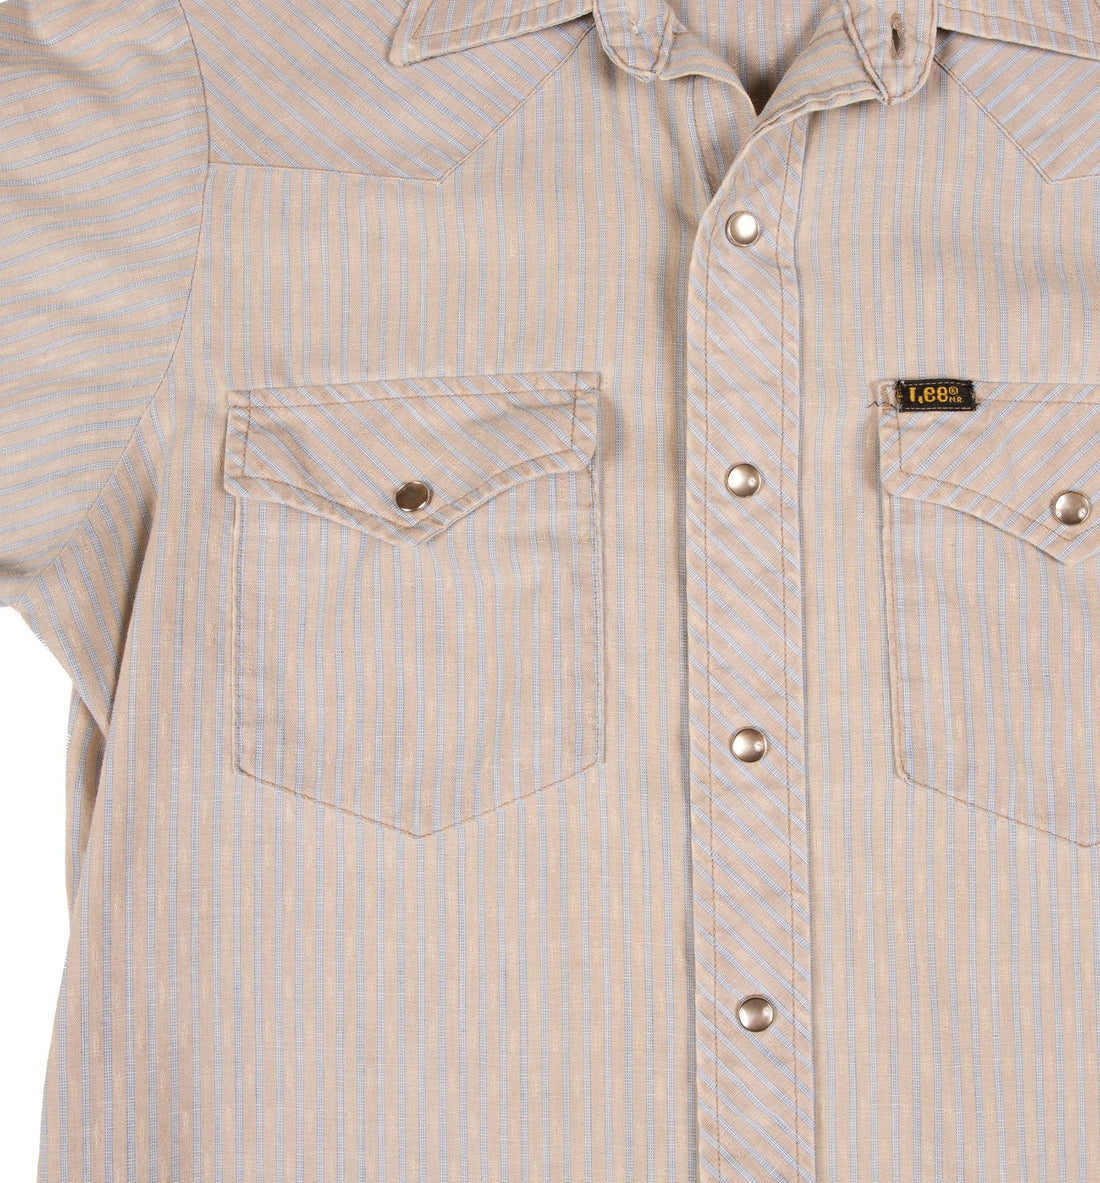 60's Lee Stripe Button up Shirt - Vintage - Iron and Resin